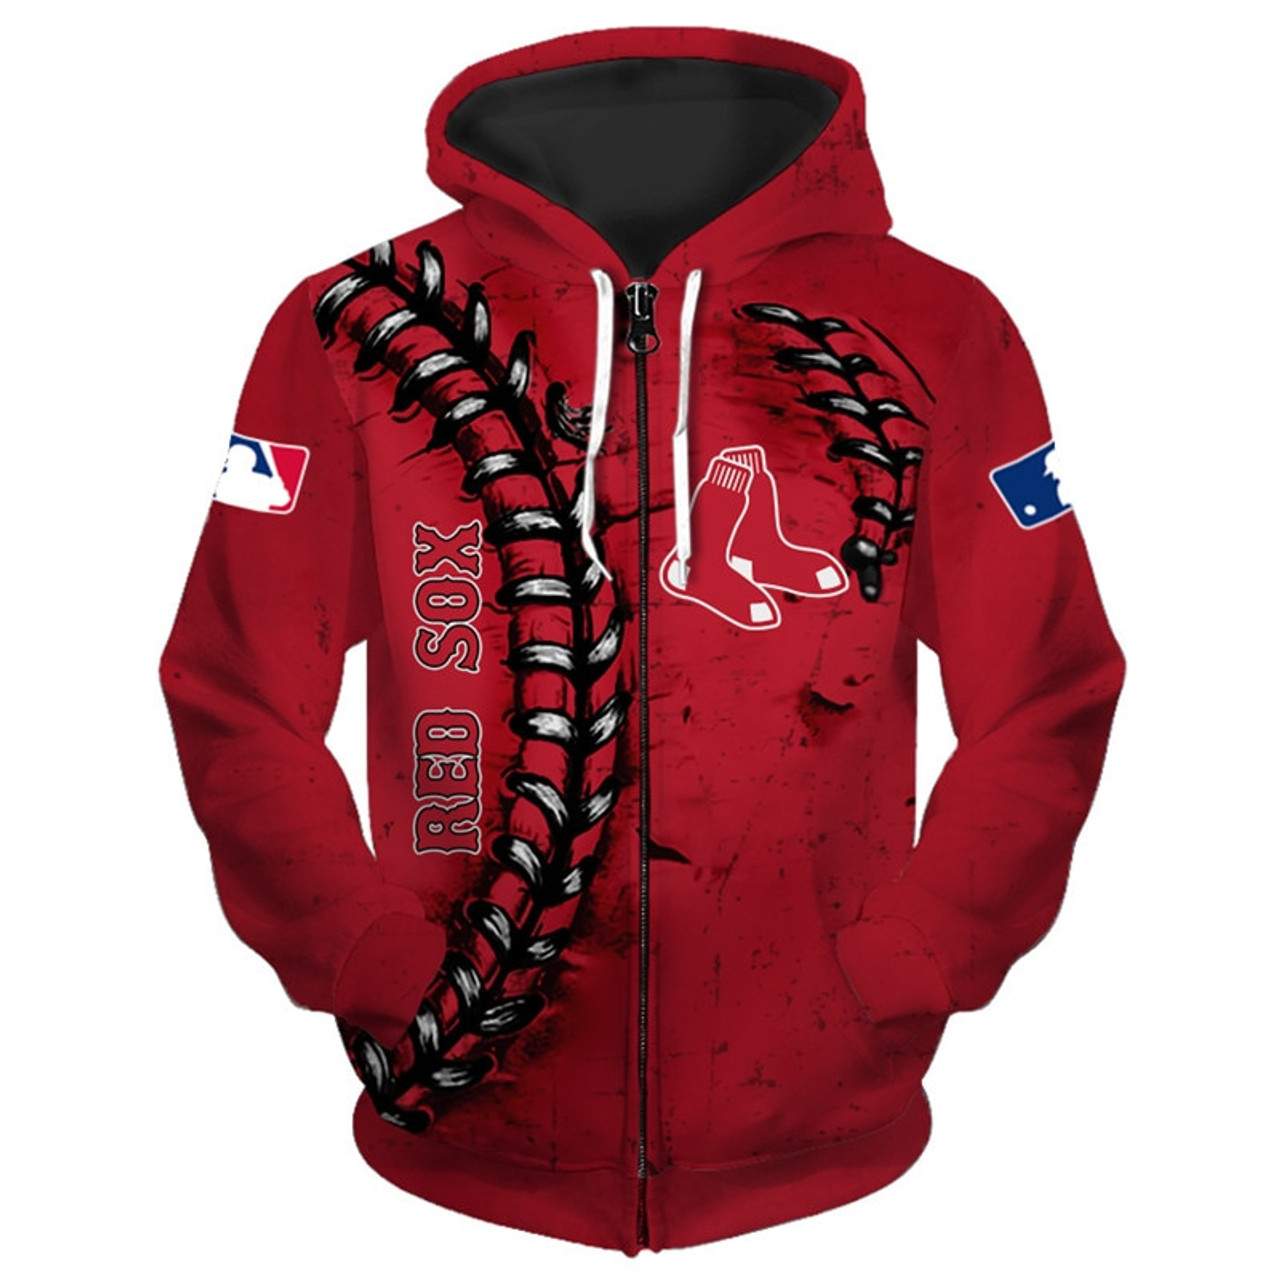 **(OFFICIALLY-LICENSED-M.L.B.BOSTON-RED-SOXS-TEAM-HOODIES/NICE-CUSTOM-DETAILED-3D-GRAPHIC-PRINTED/PREMIUM-ALL-OVER-DOUBLE-SIDED-PRINT/OFFICIAL-RED-SOXS-TEAM-COLORS & CLASSIC-RED-SOXS-BASEBALL-3D-STITCHING-GRAPHICS/PREMIUM-ZIPPERED-FRONT-HOODIES)**